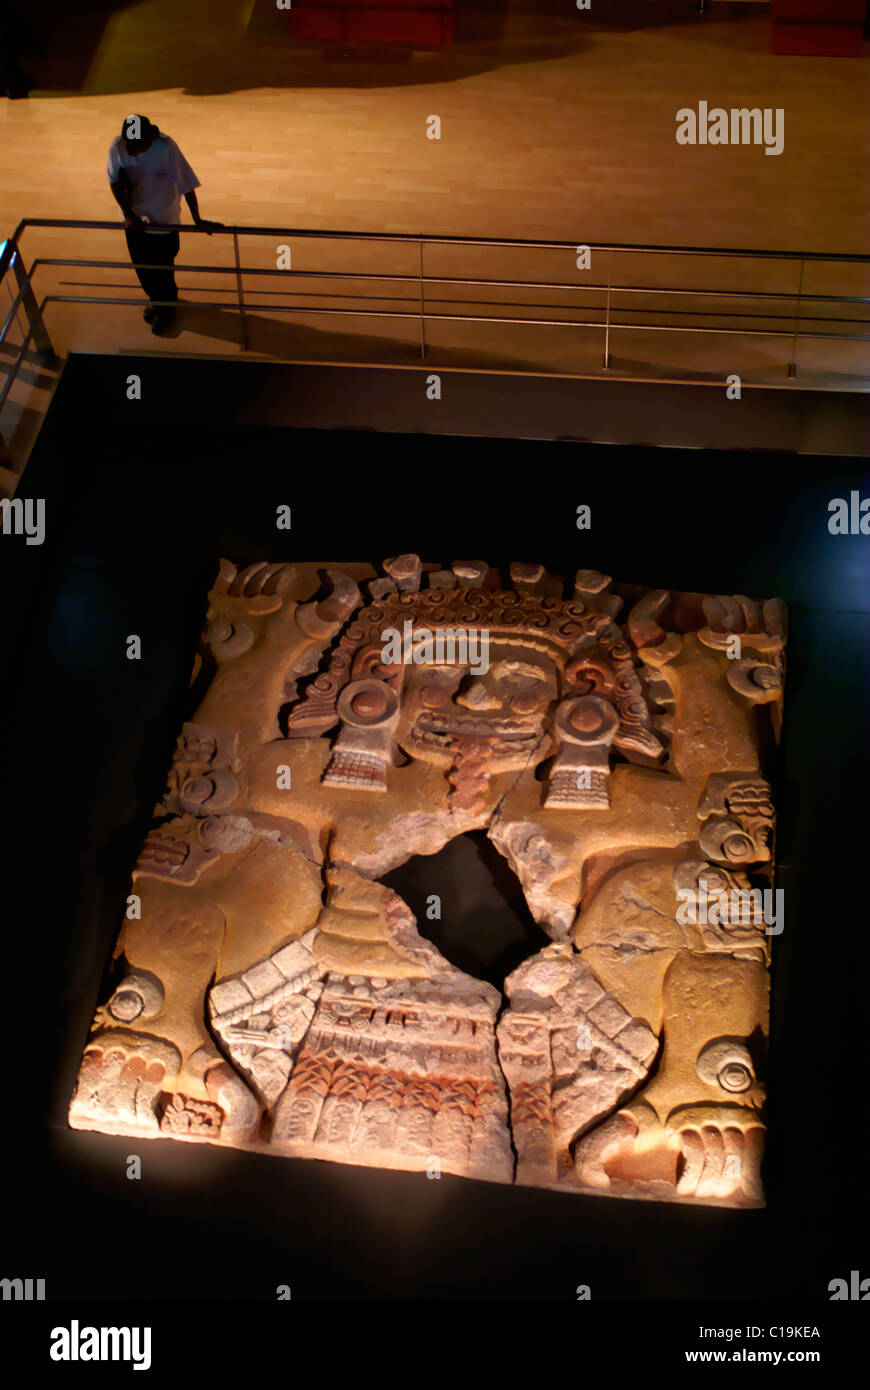 Person looking at the Tlaltecuhtli sculpture in the Templo Mayor Museum, Mexico City - Stock Image